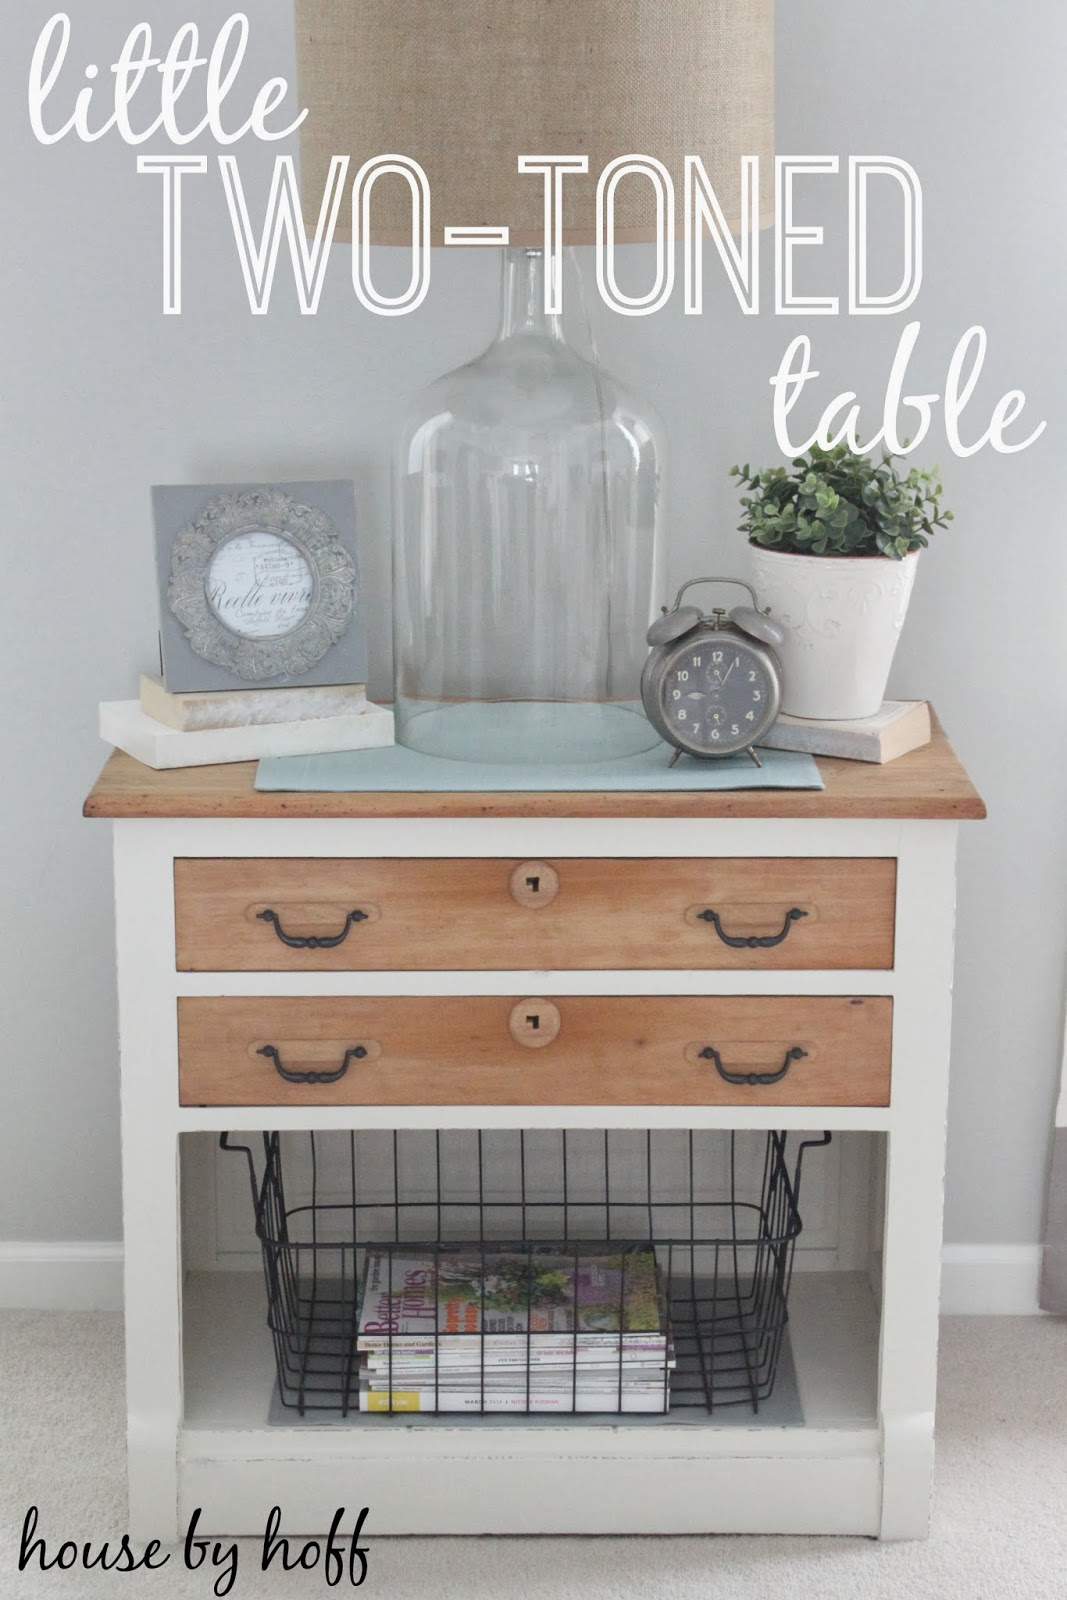 two-toned table makeover via housebyhoff.com